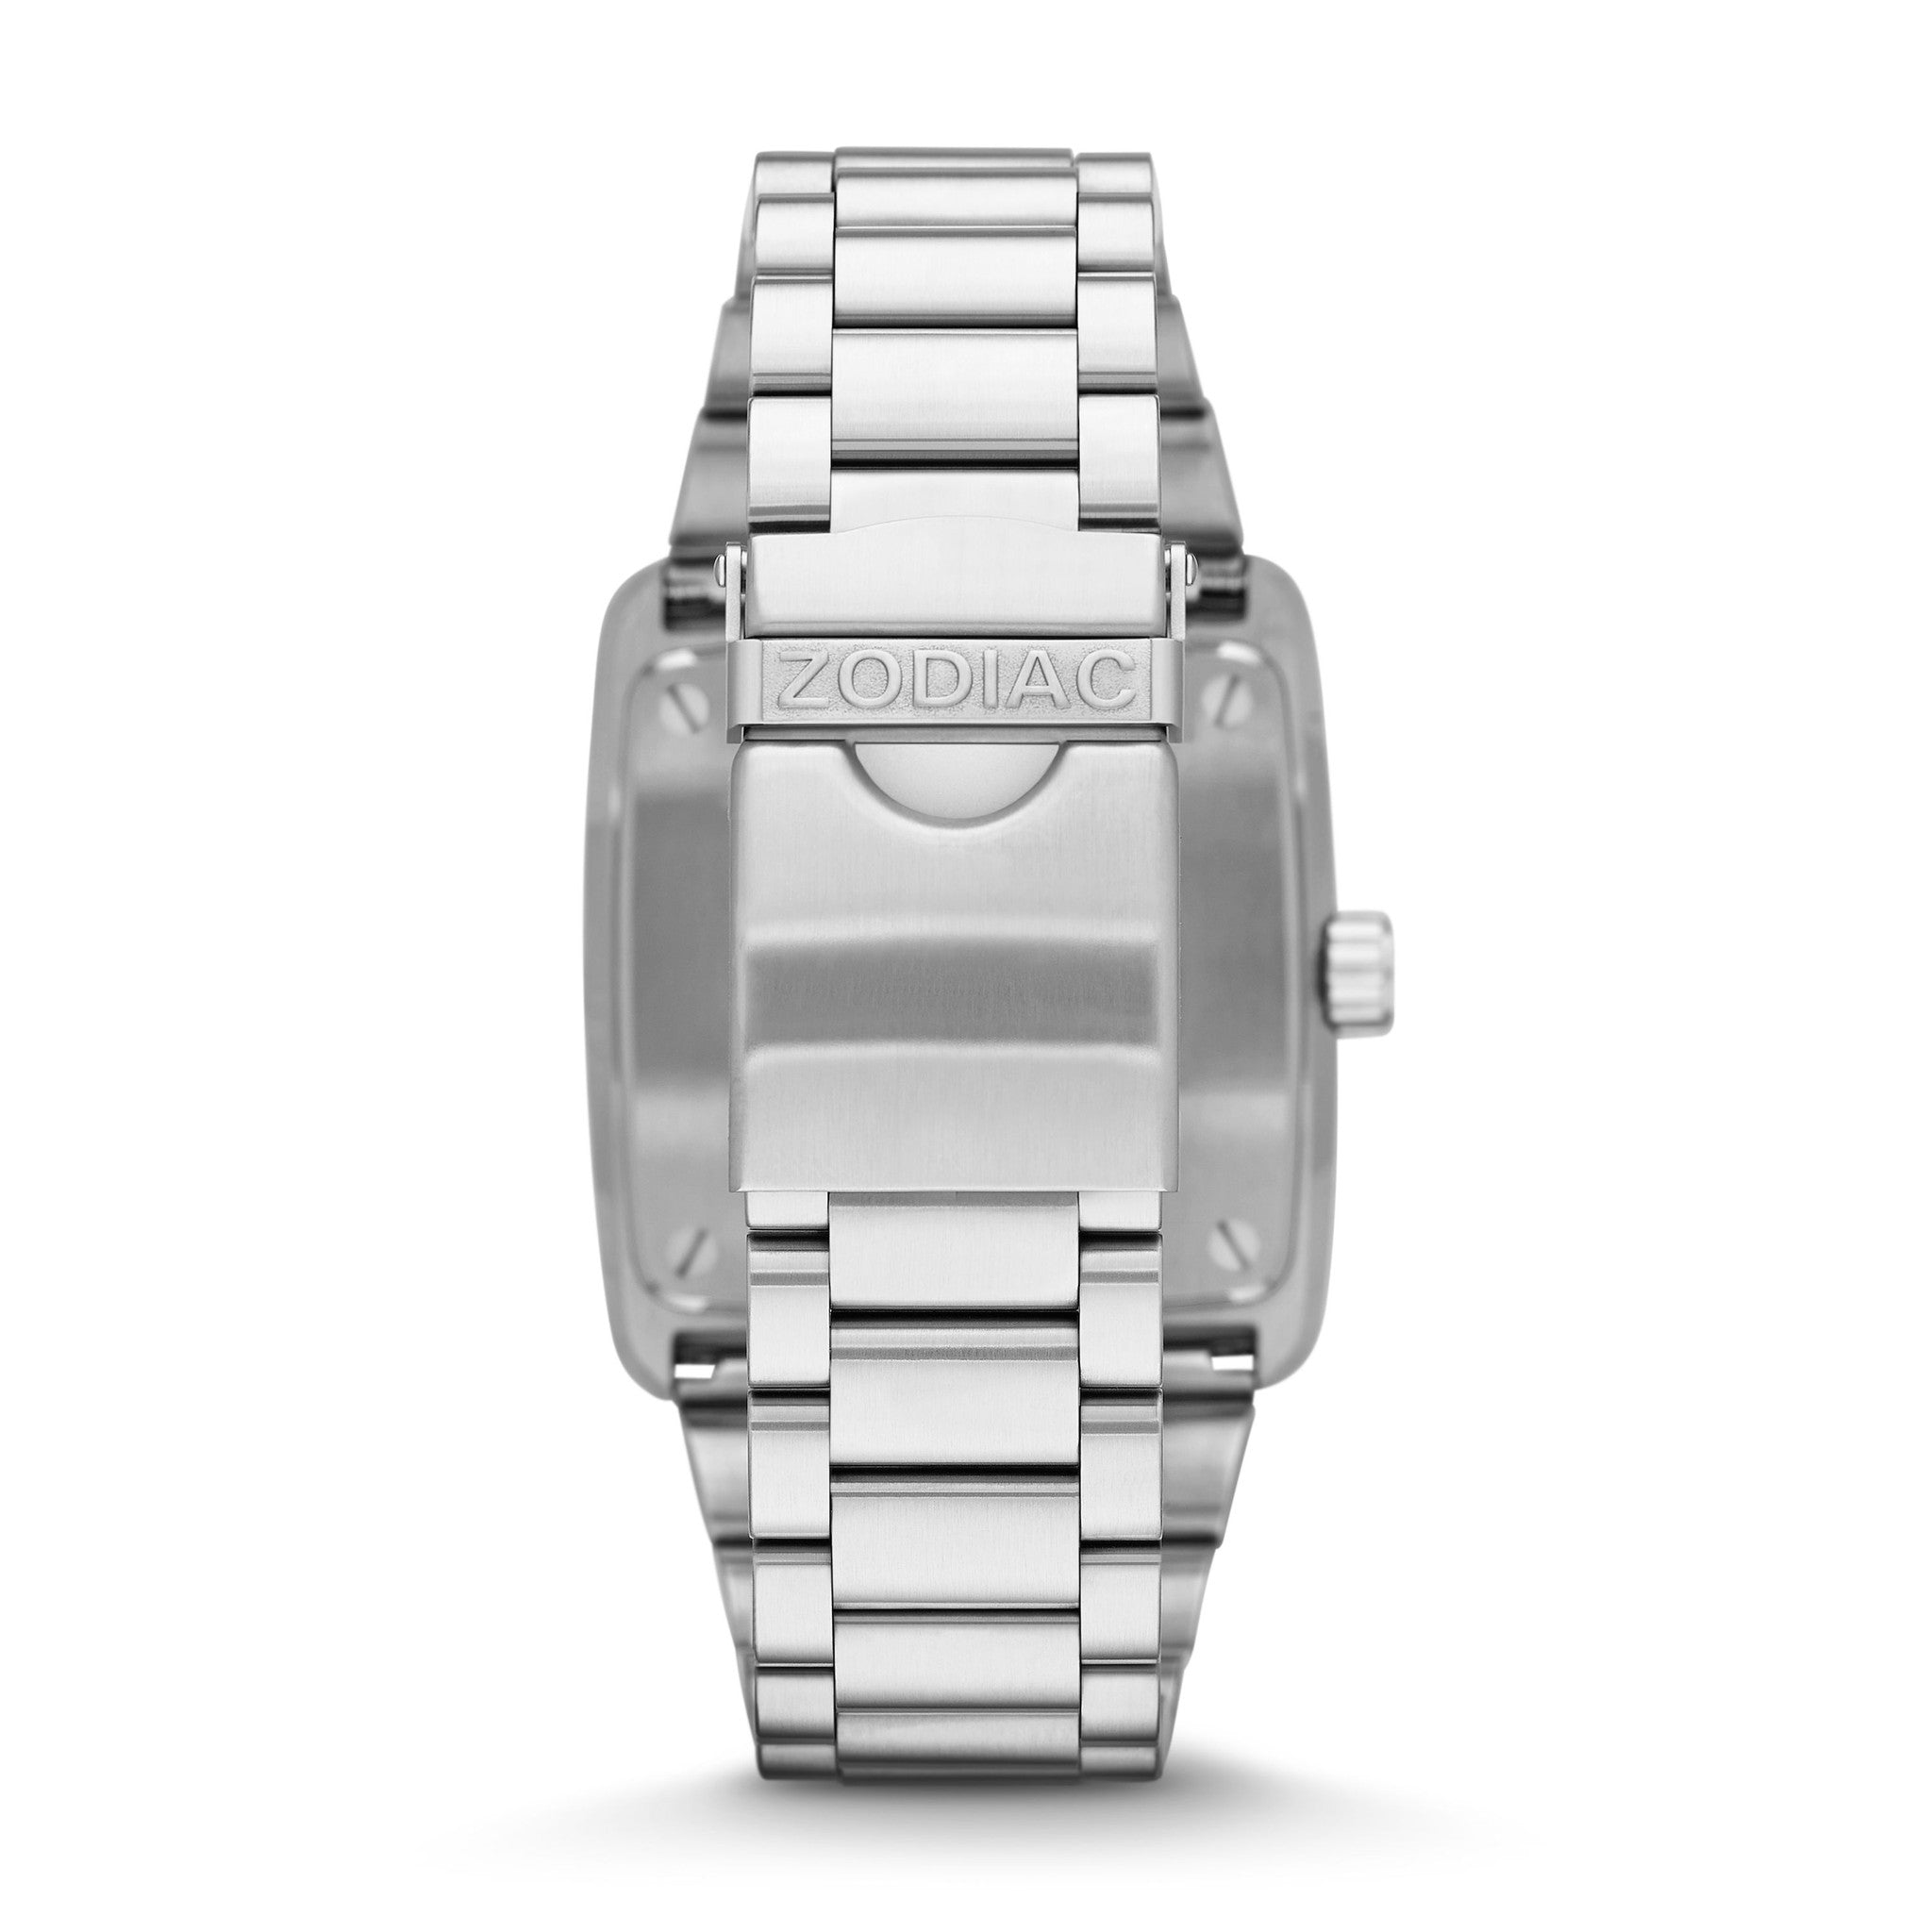 ASTROGRAPHIC AUTOMATIC STAINLESS STEEL WATCH